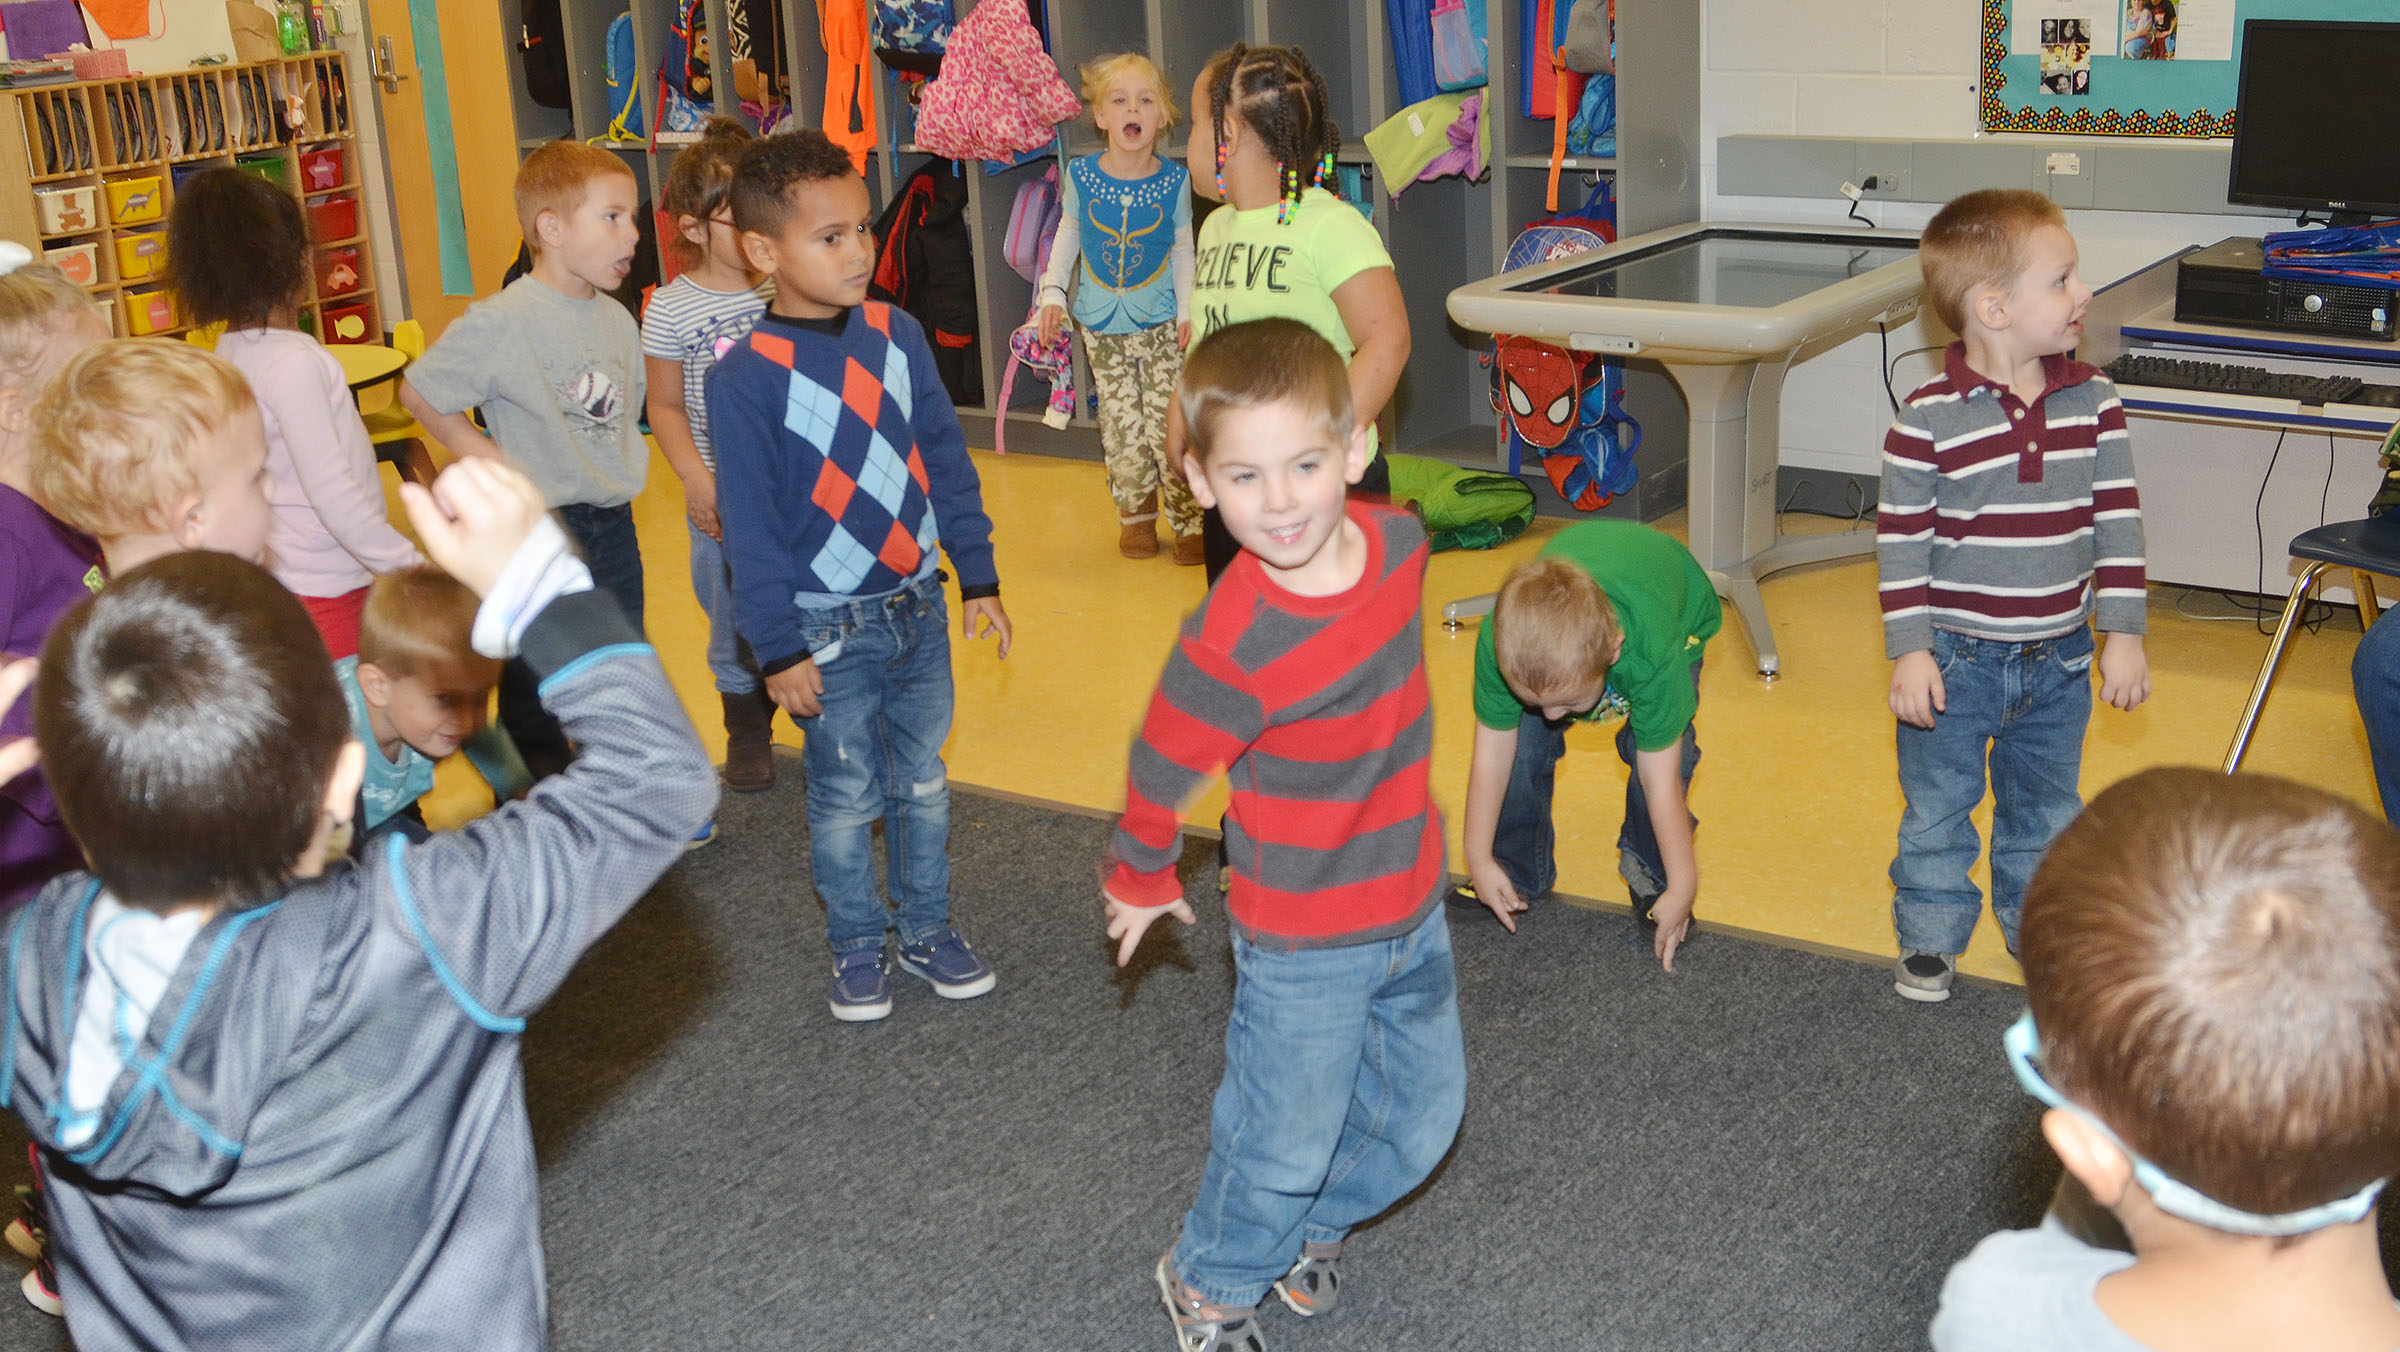 CES preschool students sing and dance together.